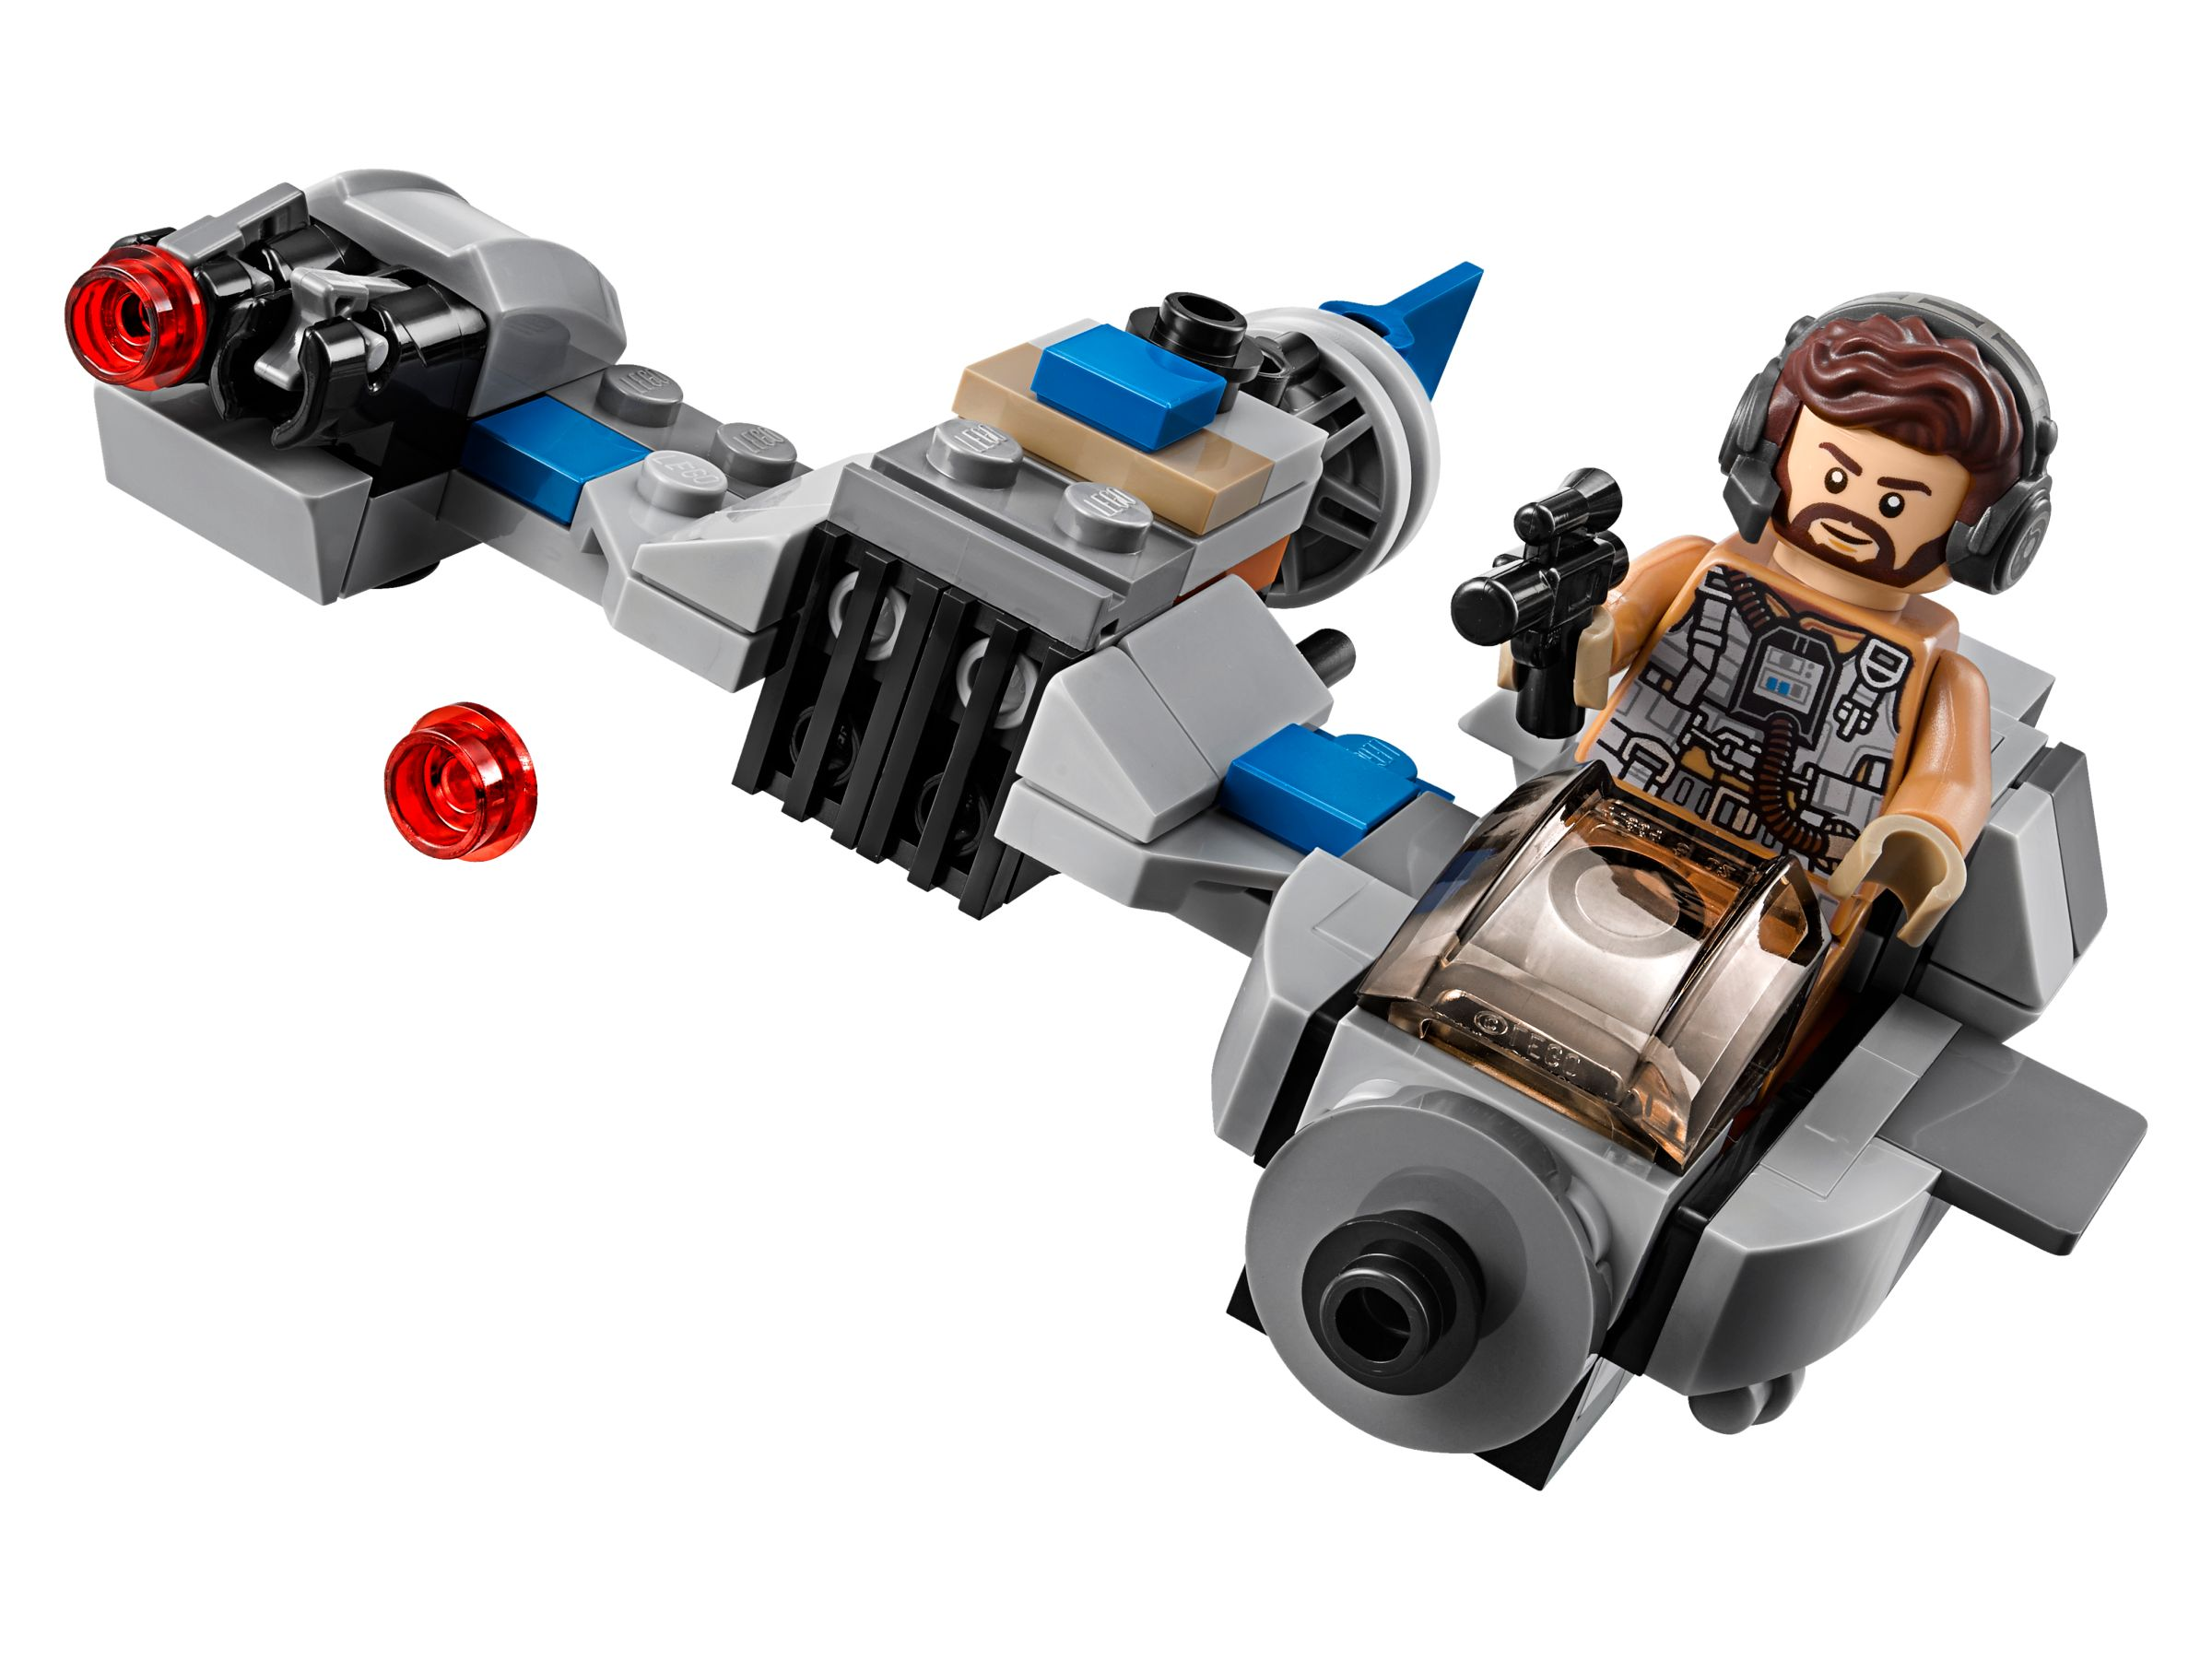 LEGO Star Wars 75195 Ski Speeder™ vs. First Order Walker™ Microfighters LEGO_75195_alt3.jpg